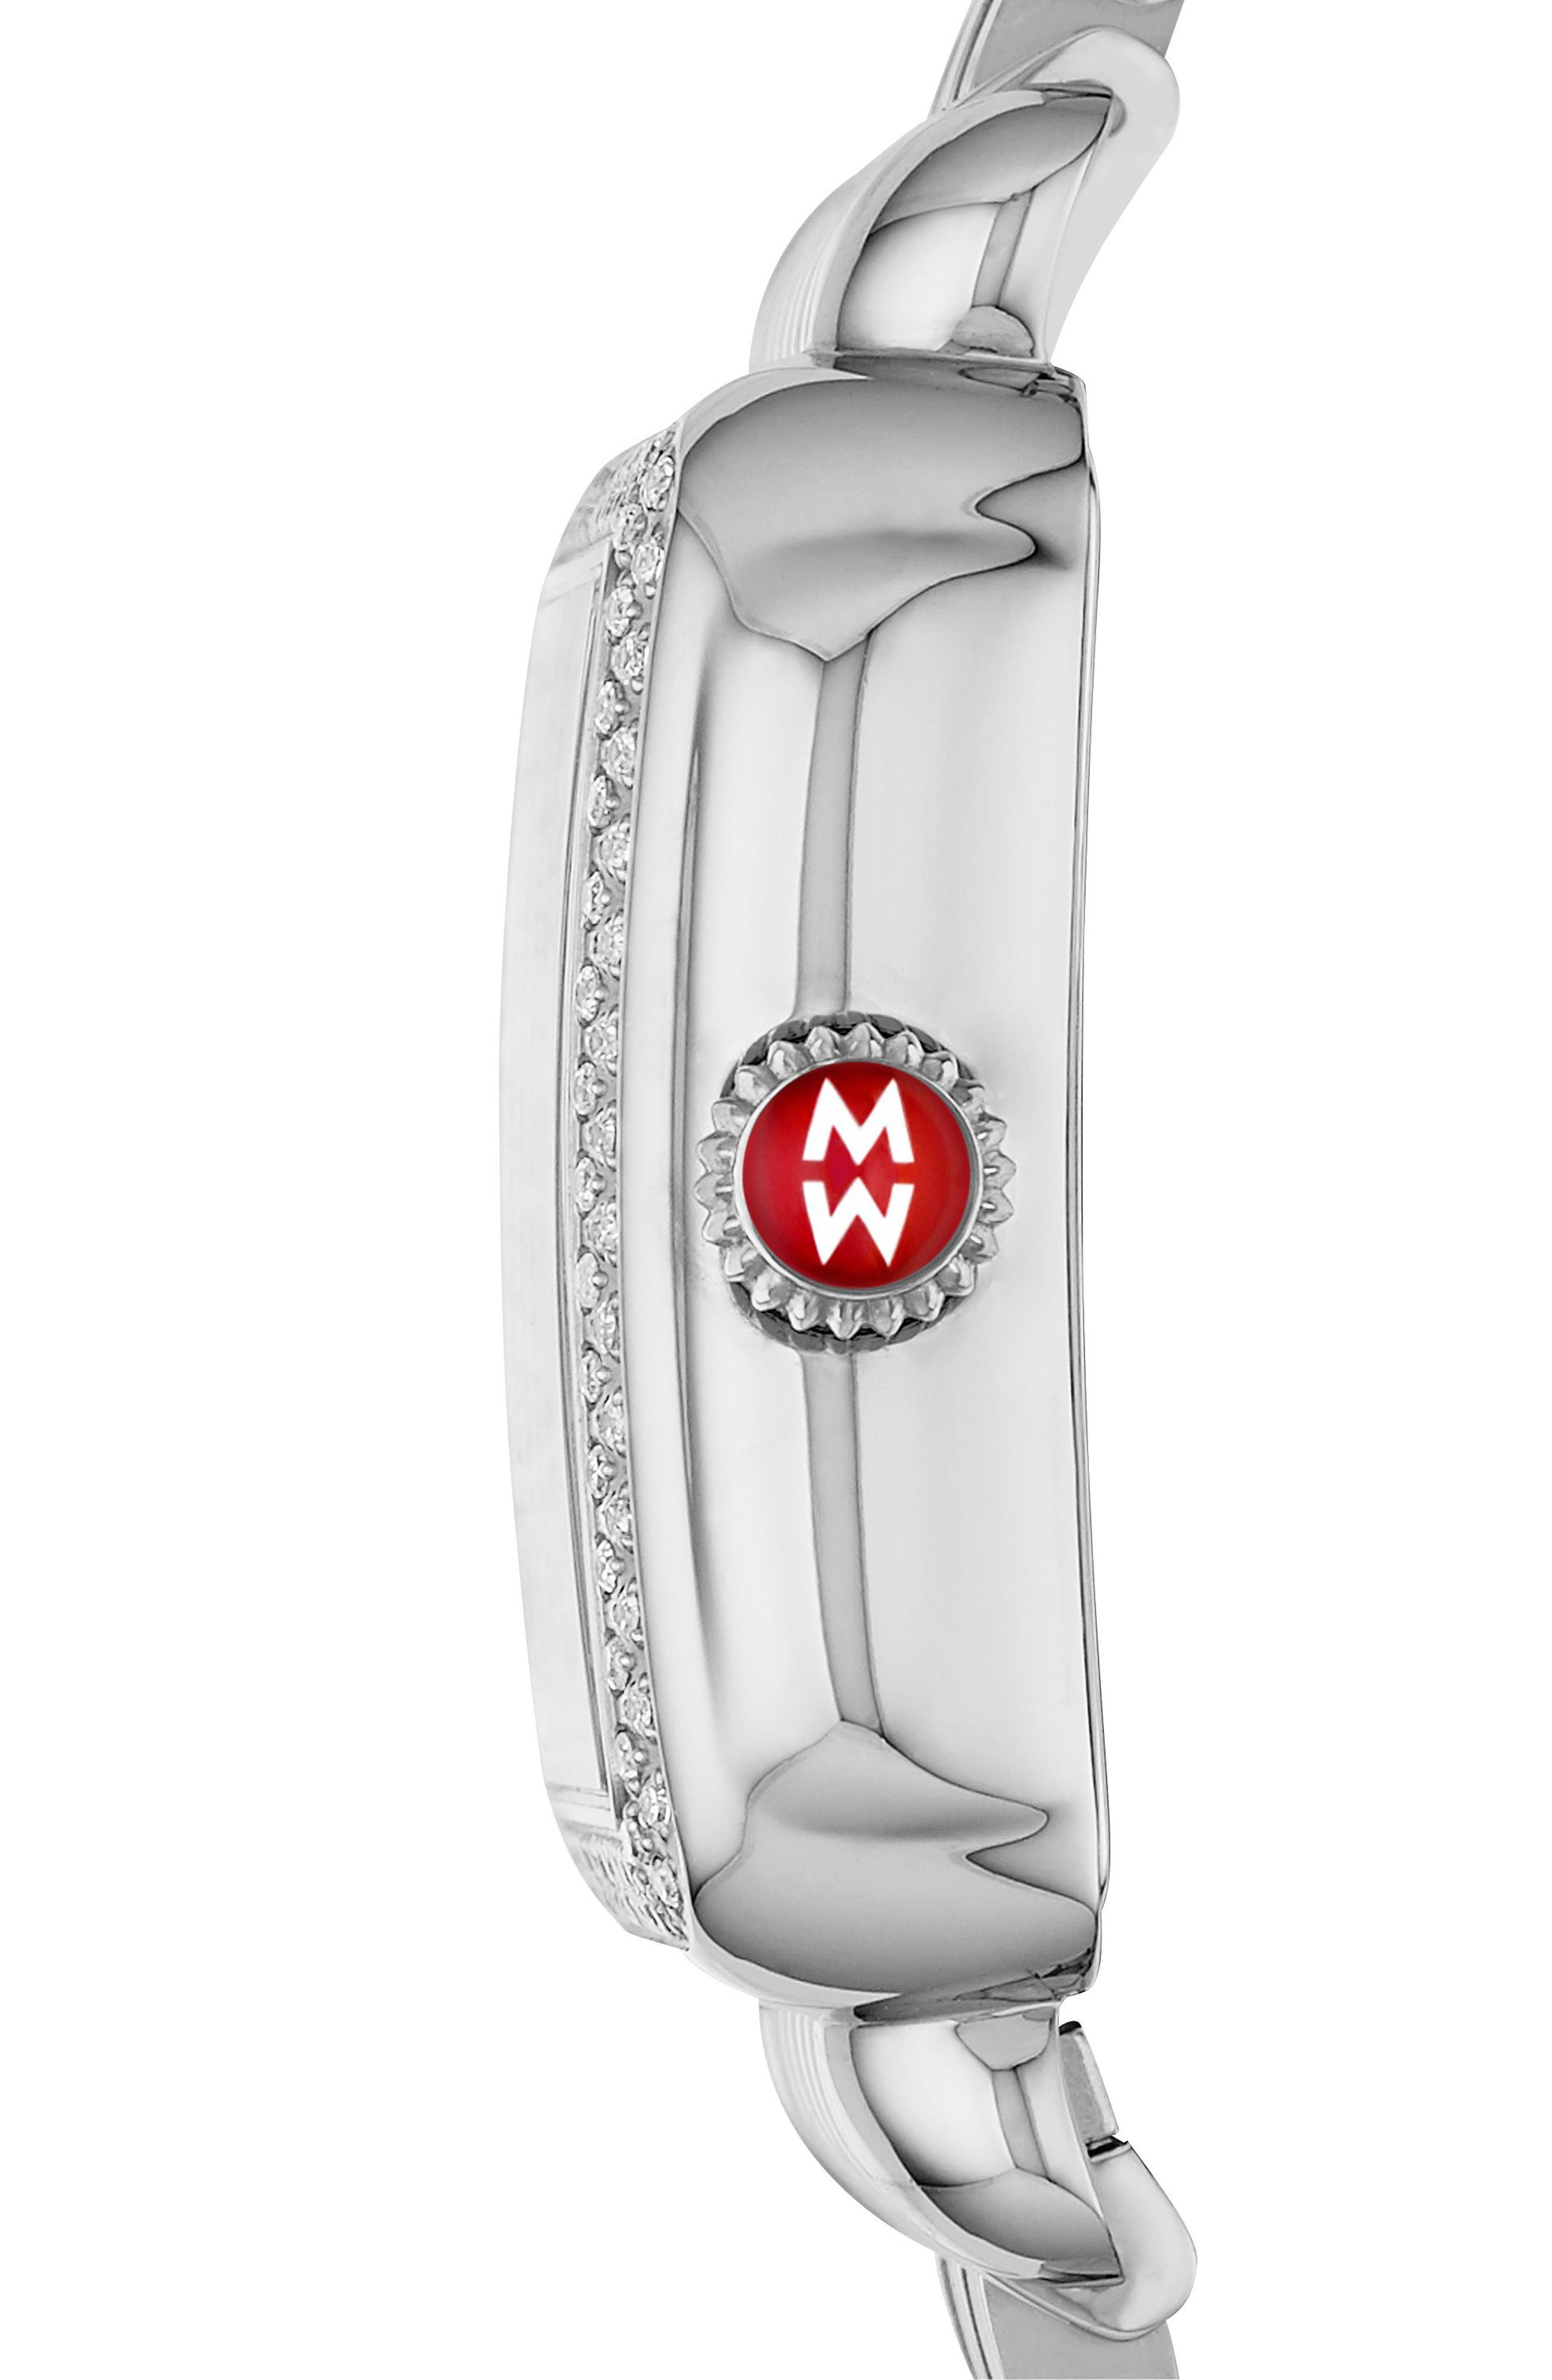 Deco Madison Champagne Diamond Watch Head, 33mm x 35mm,                             Alternate thumbnail 2, color,                             Silver/ Champagne